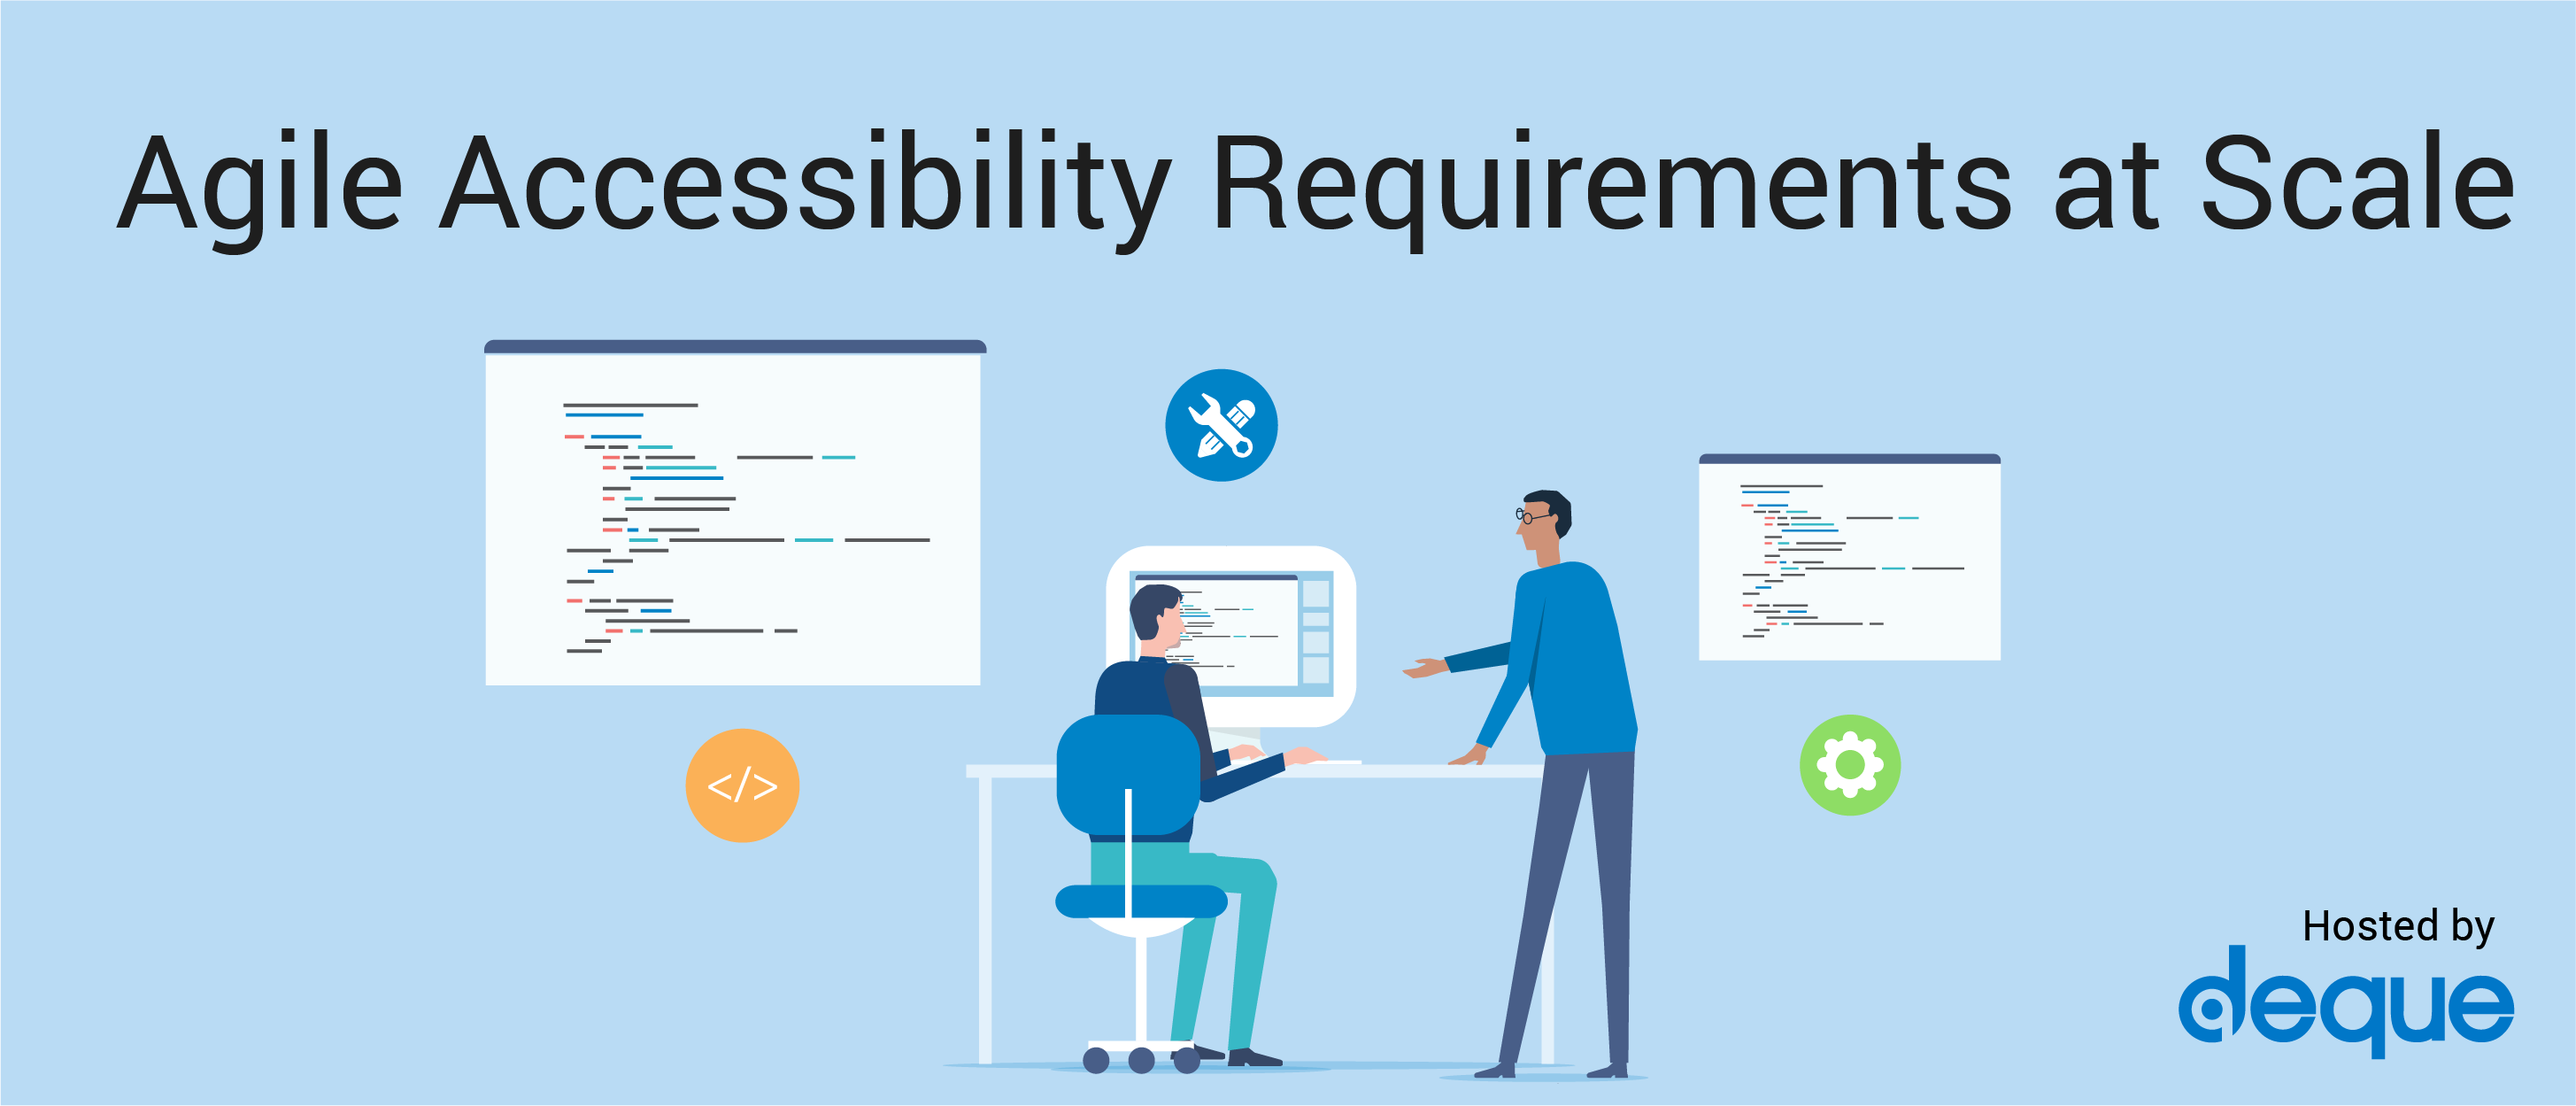 Illustration of two people working at a computer, coding. The words Agile Accessibility Requirements at Scale are featured.